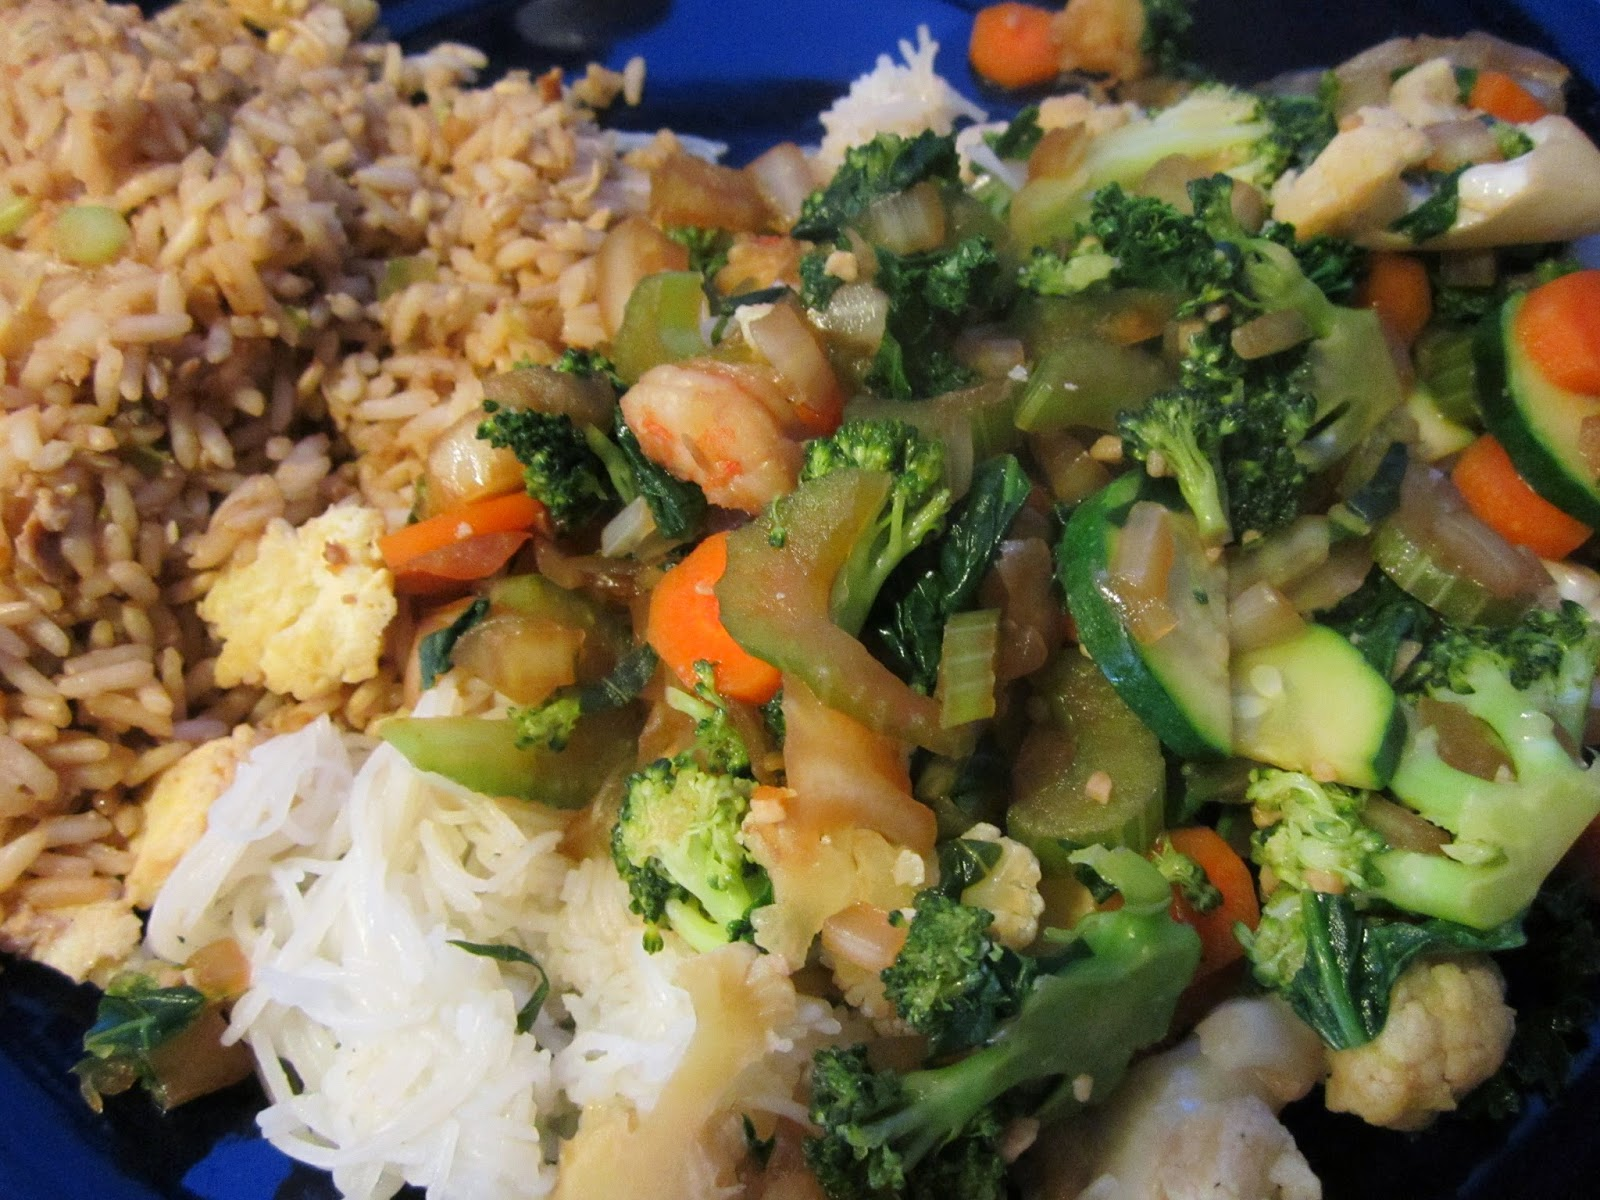 ... Shrimp and Tofu Stir Fry Over Rice Noodles & Fried Rice - Gluten Free